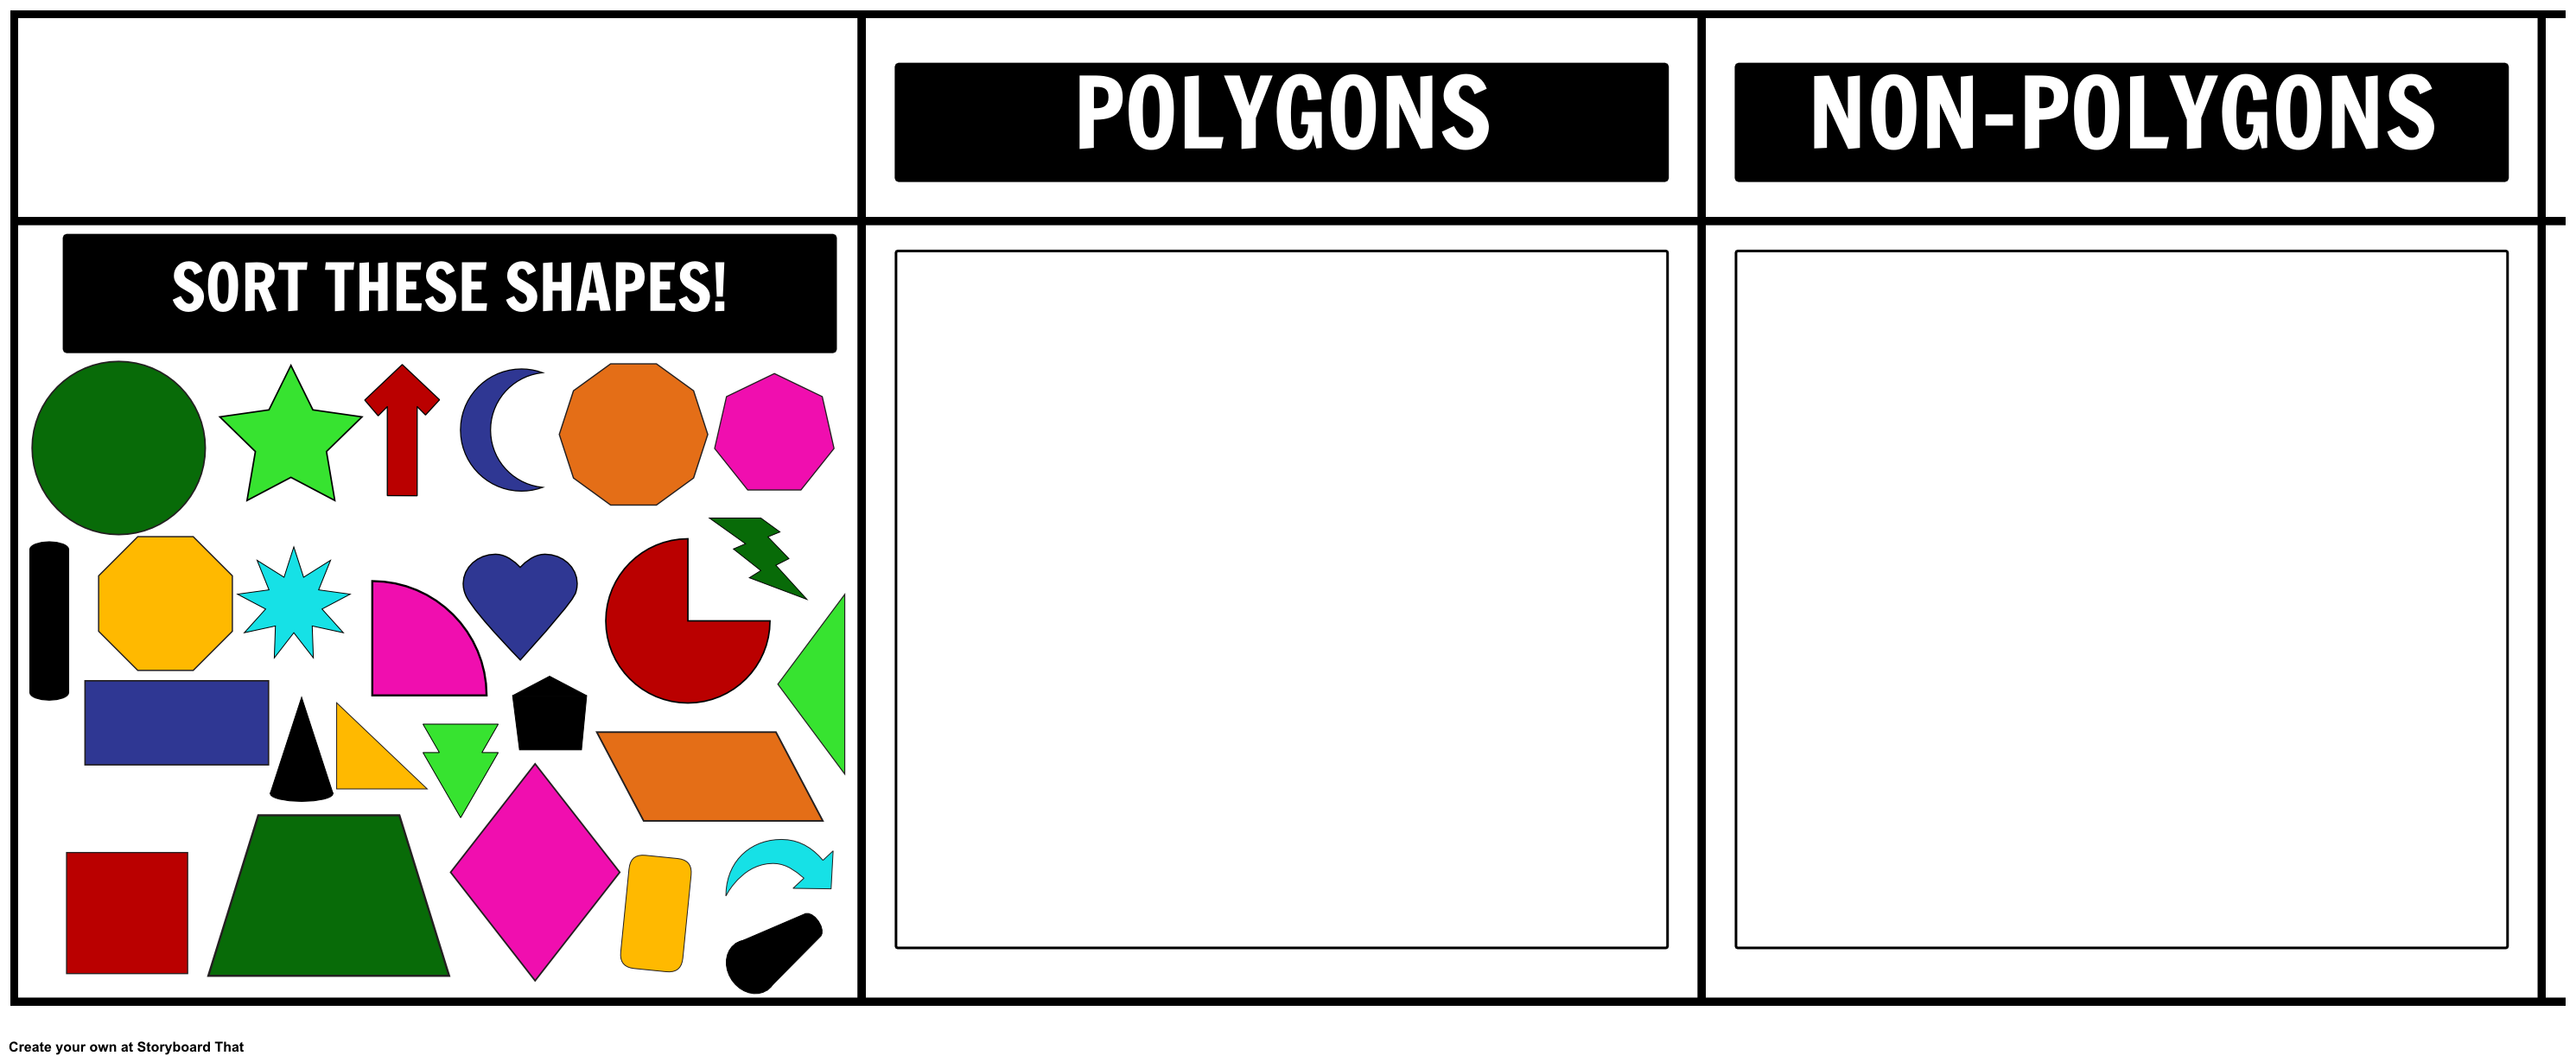 With This Activity Your Students Can Sort The Shapes Provided And Put Them Under The Polygon Or